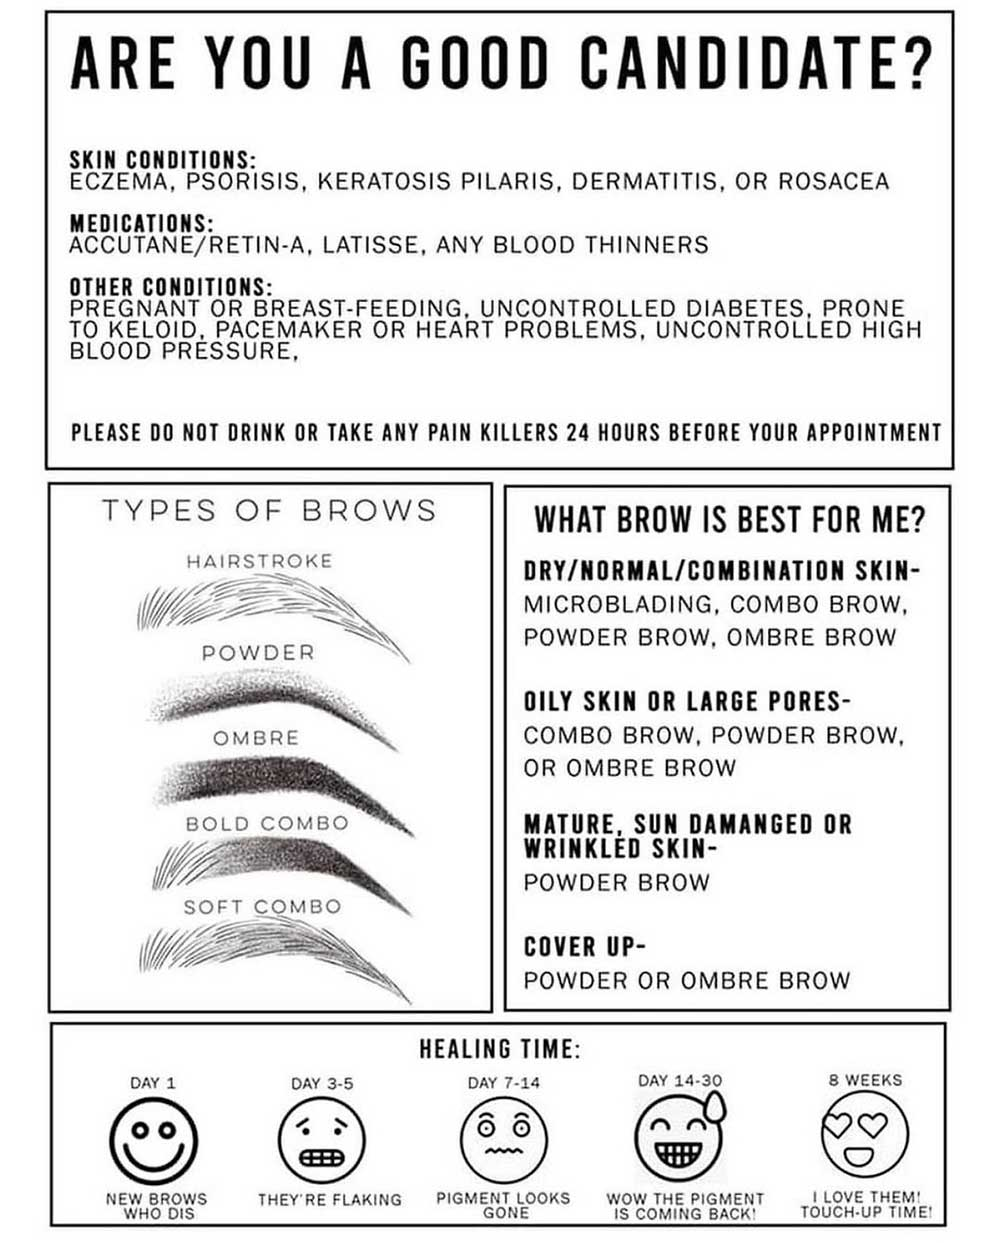 Are you a good candidate for microblading or powder brows